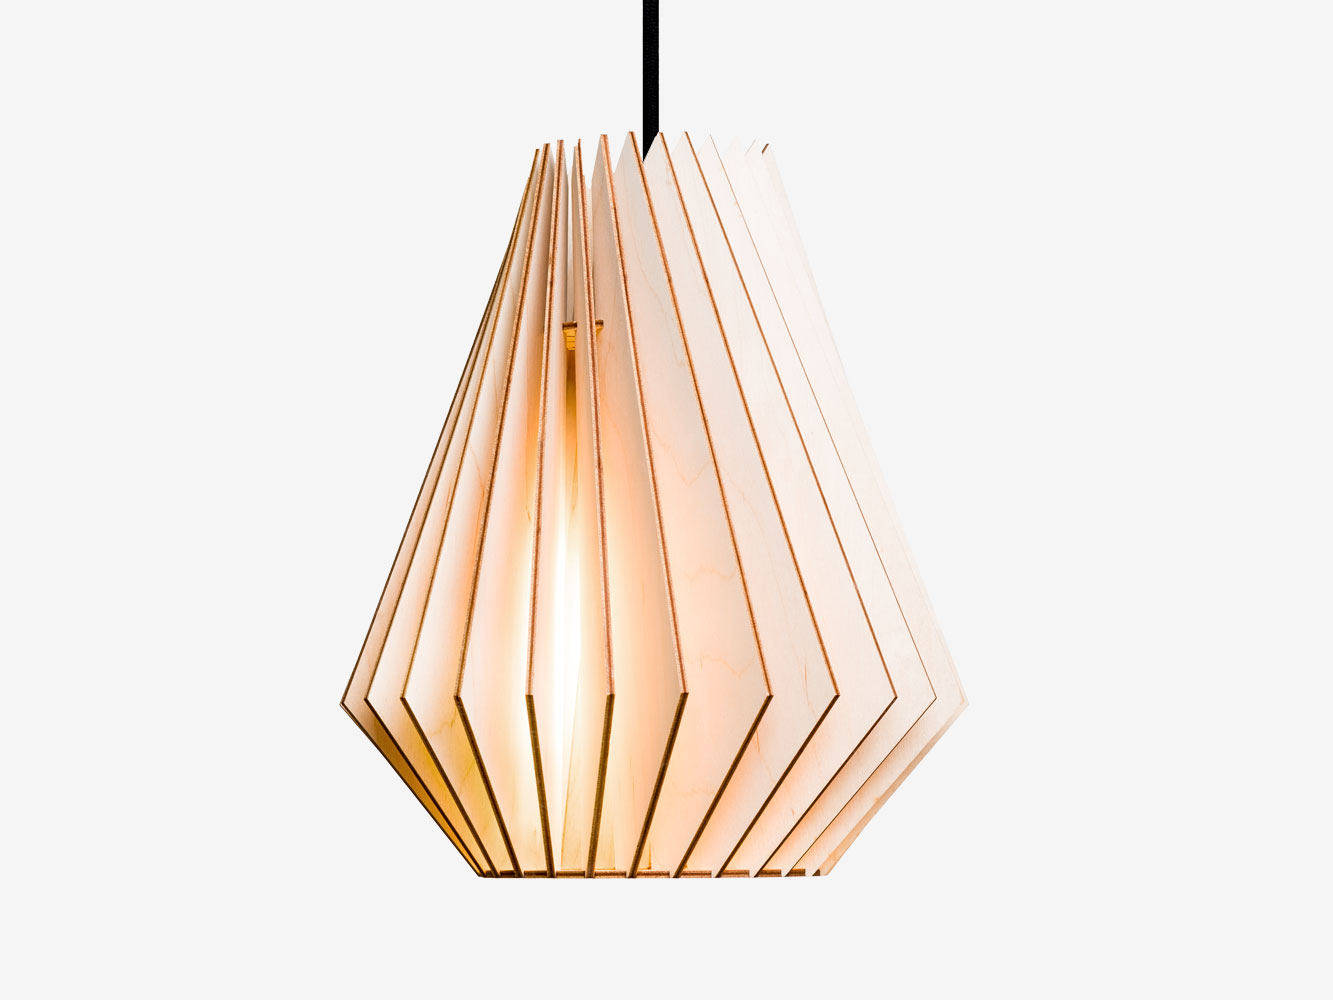 wood lampshade